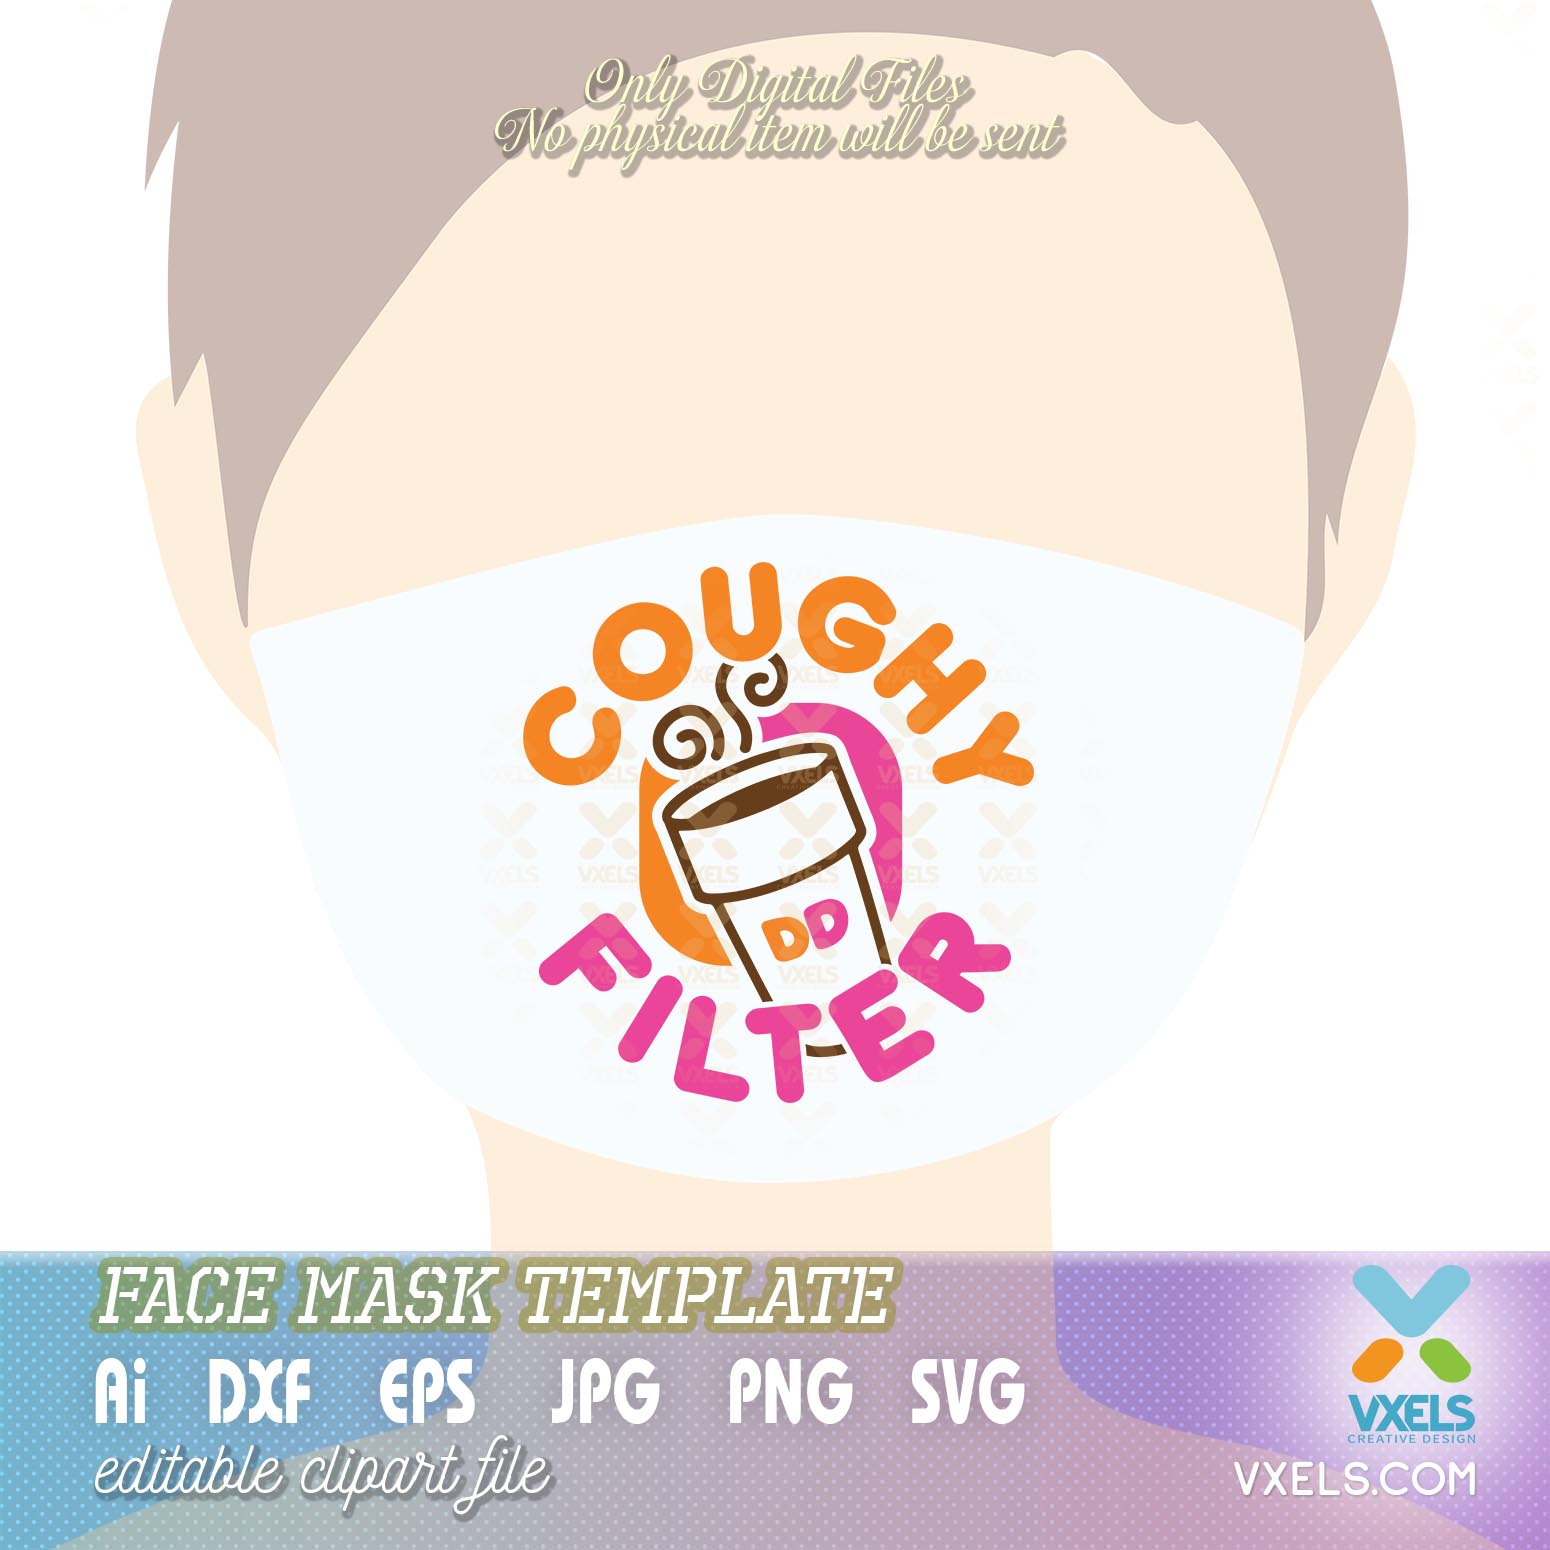 Coughy Filter DD Dunkin Donuts SVG for Coffee Clipart and ... (1550 x 1550 Pixel)